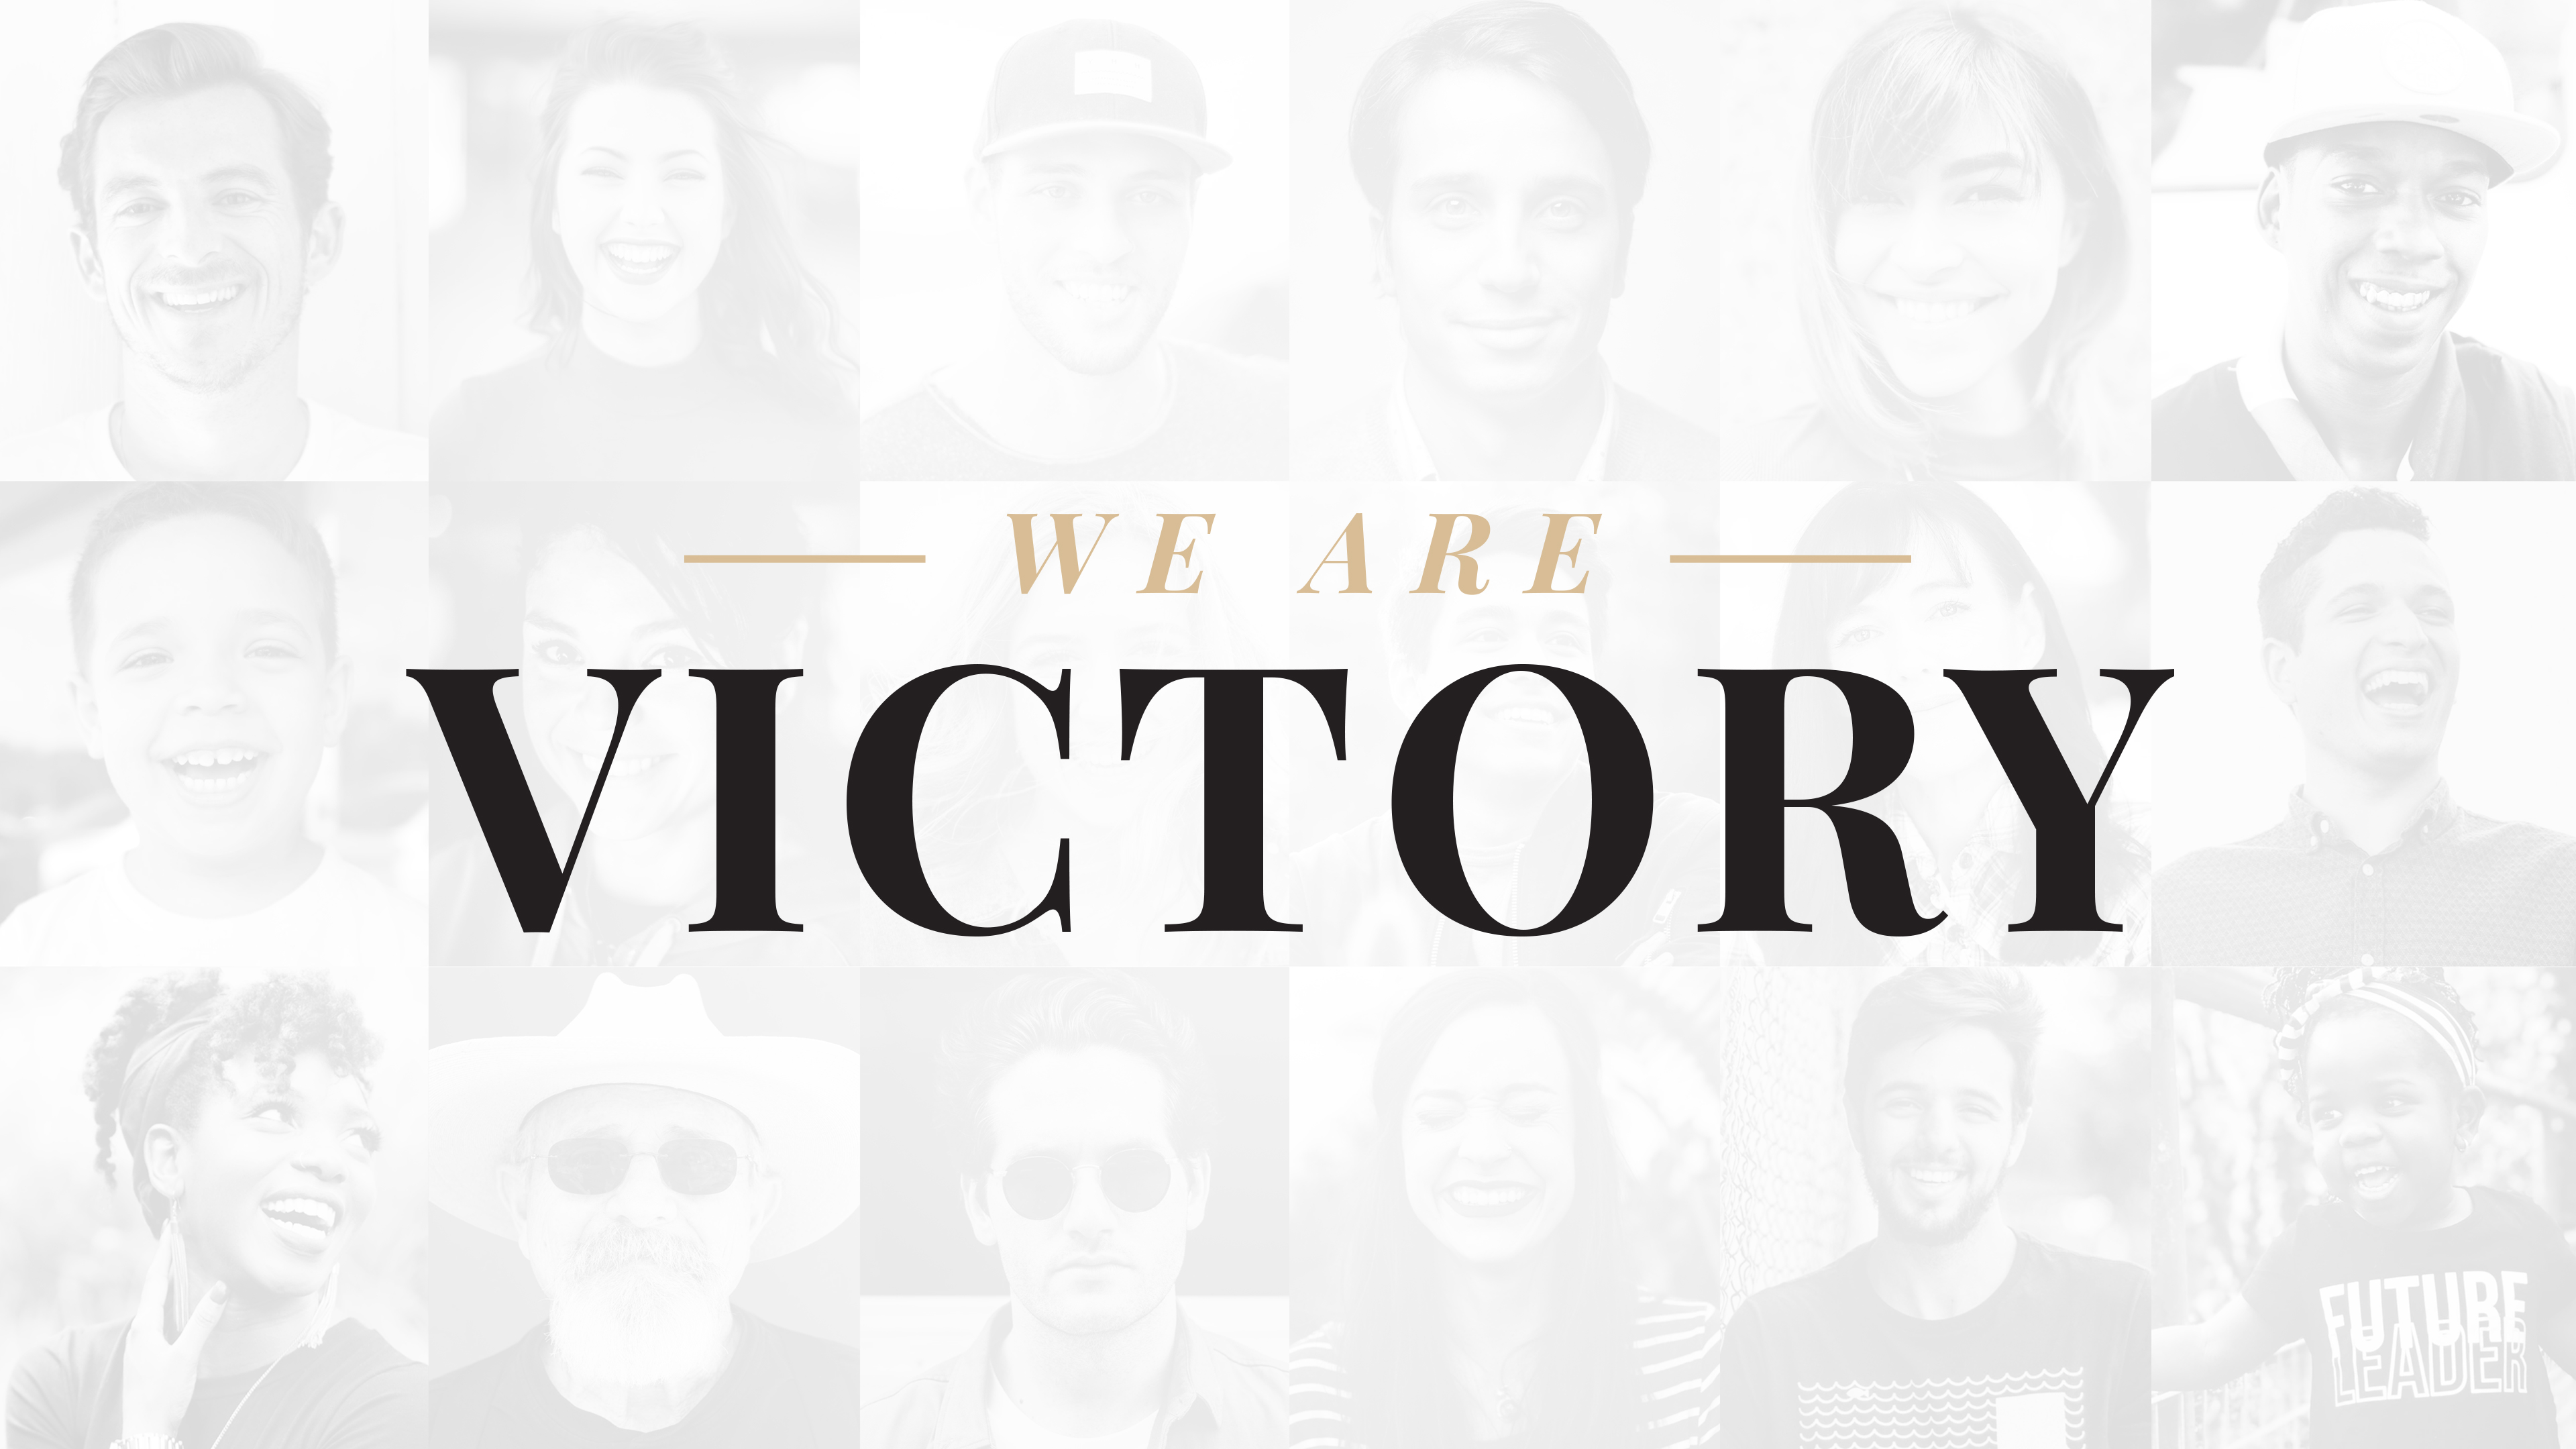 EDM | We Are Victory at Victory Church